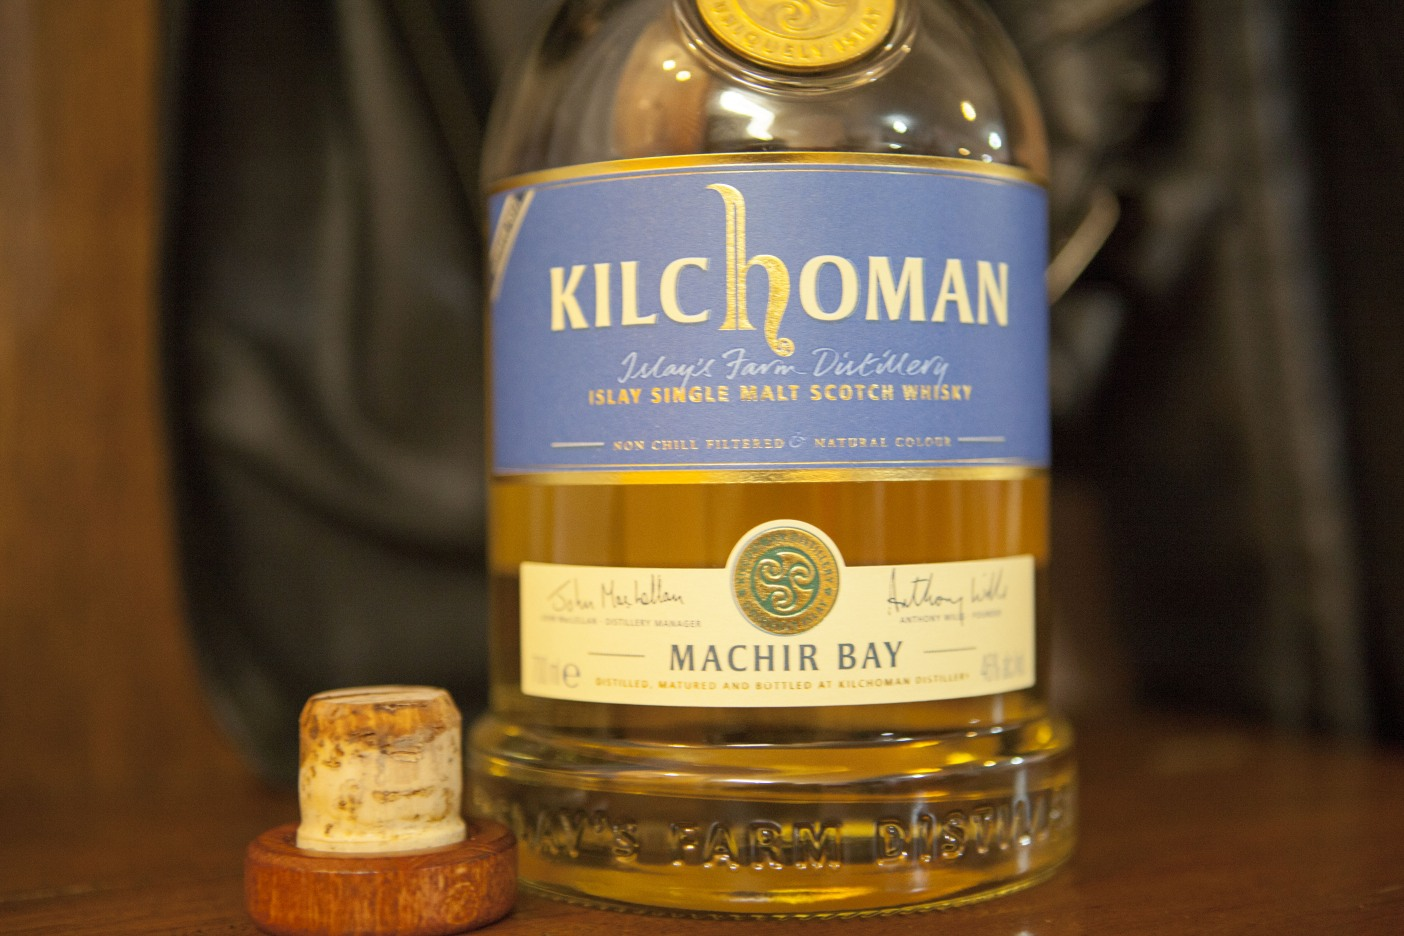 Kilchoman Machir Bay Whisky Review